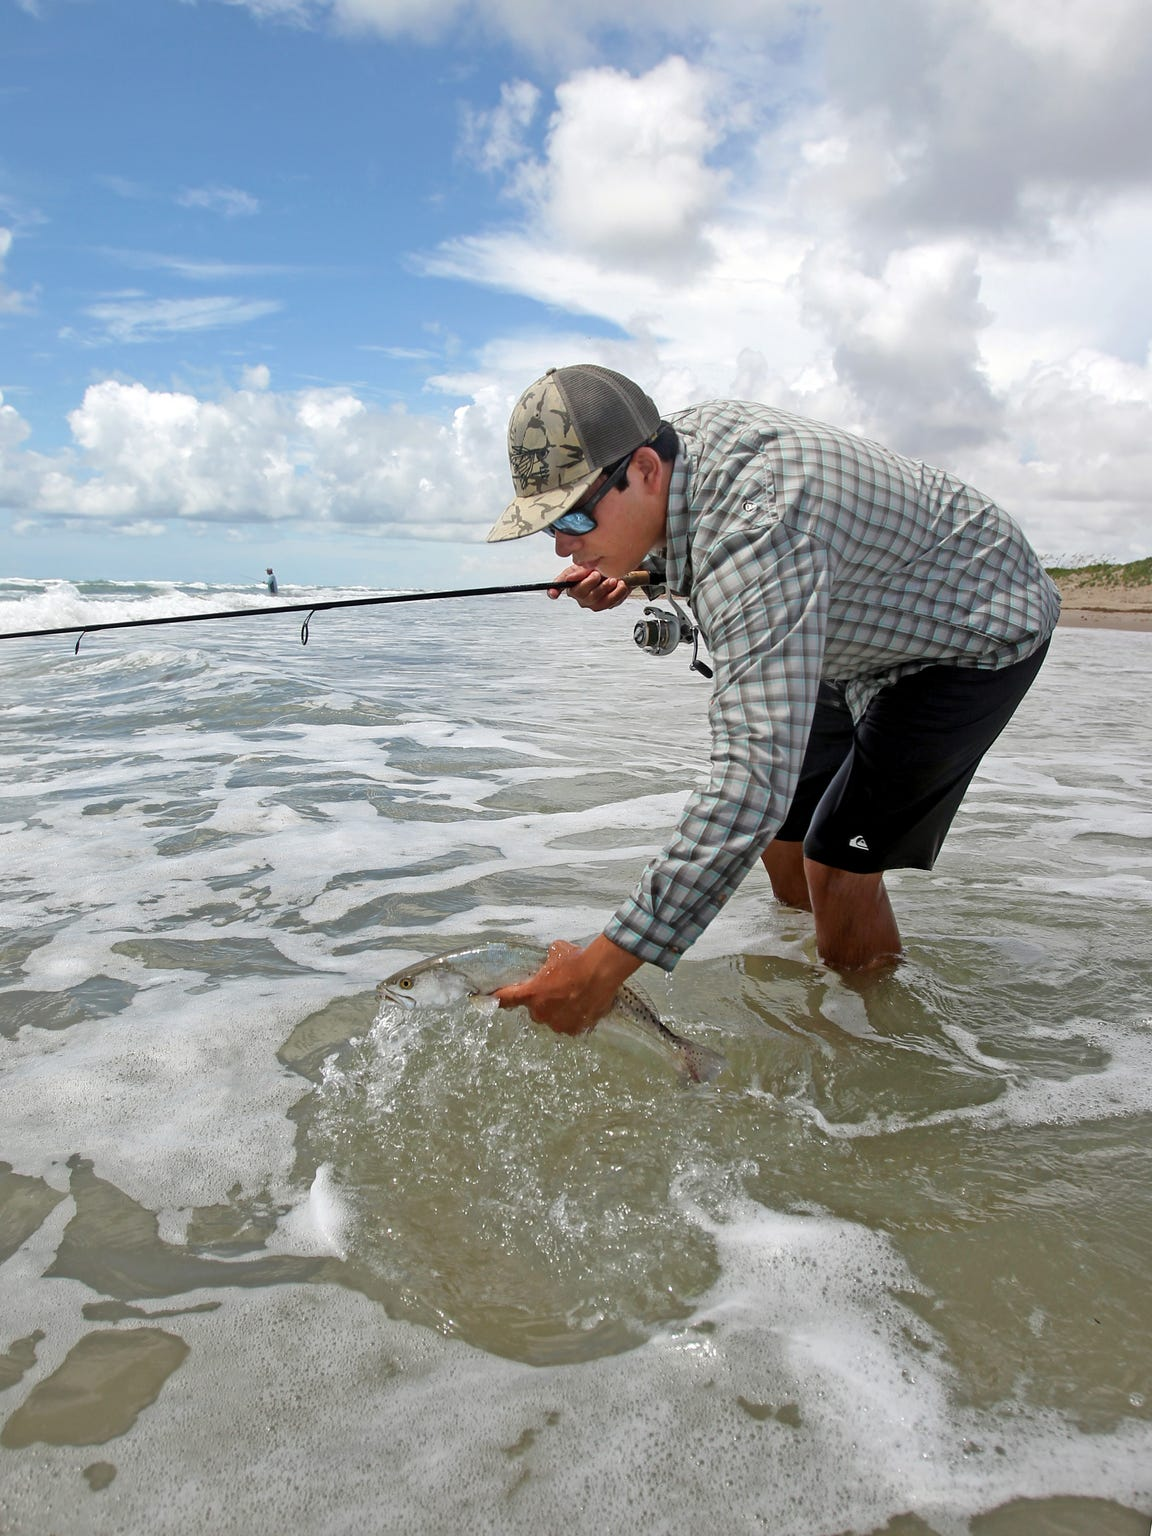 Summer trout fishing along Padre Island beaches can